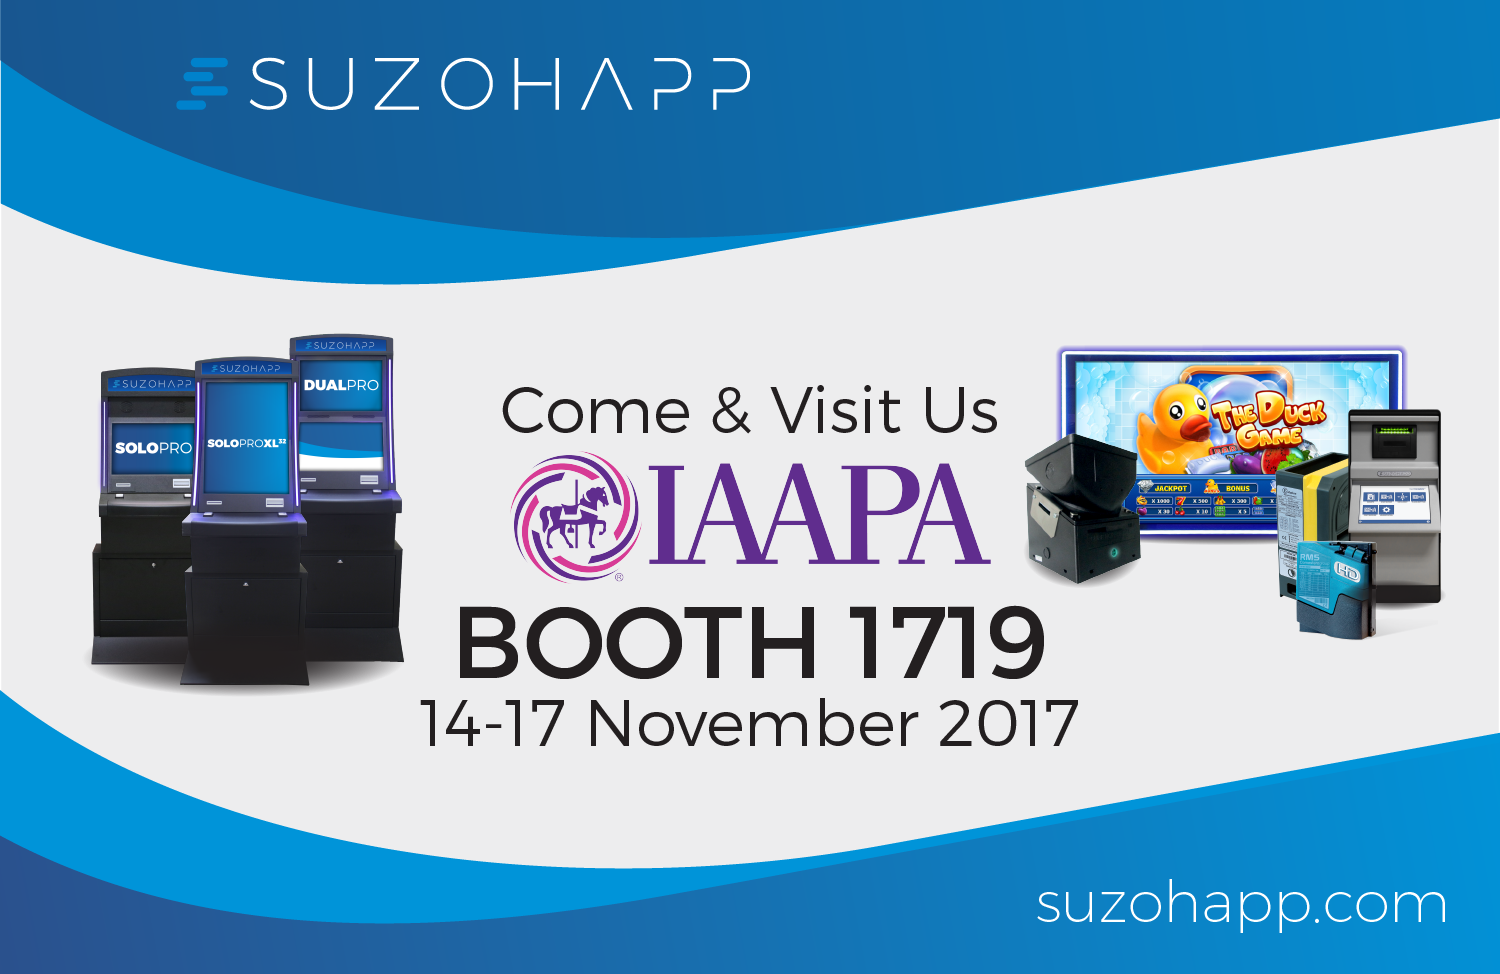 SUZOHAPP in full force at IAAPA